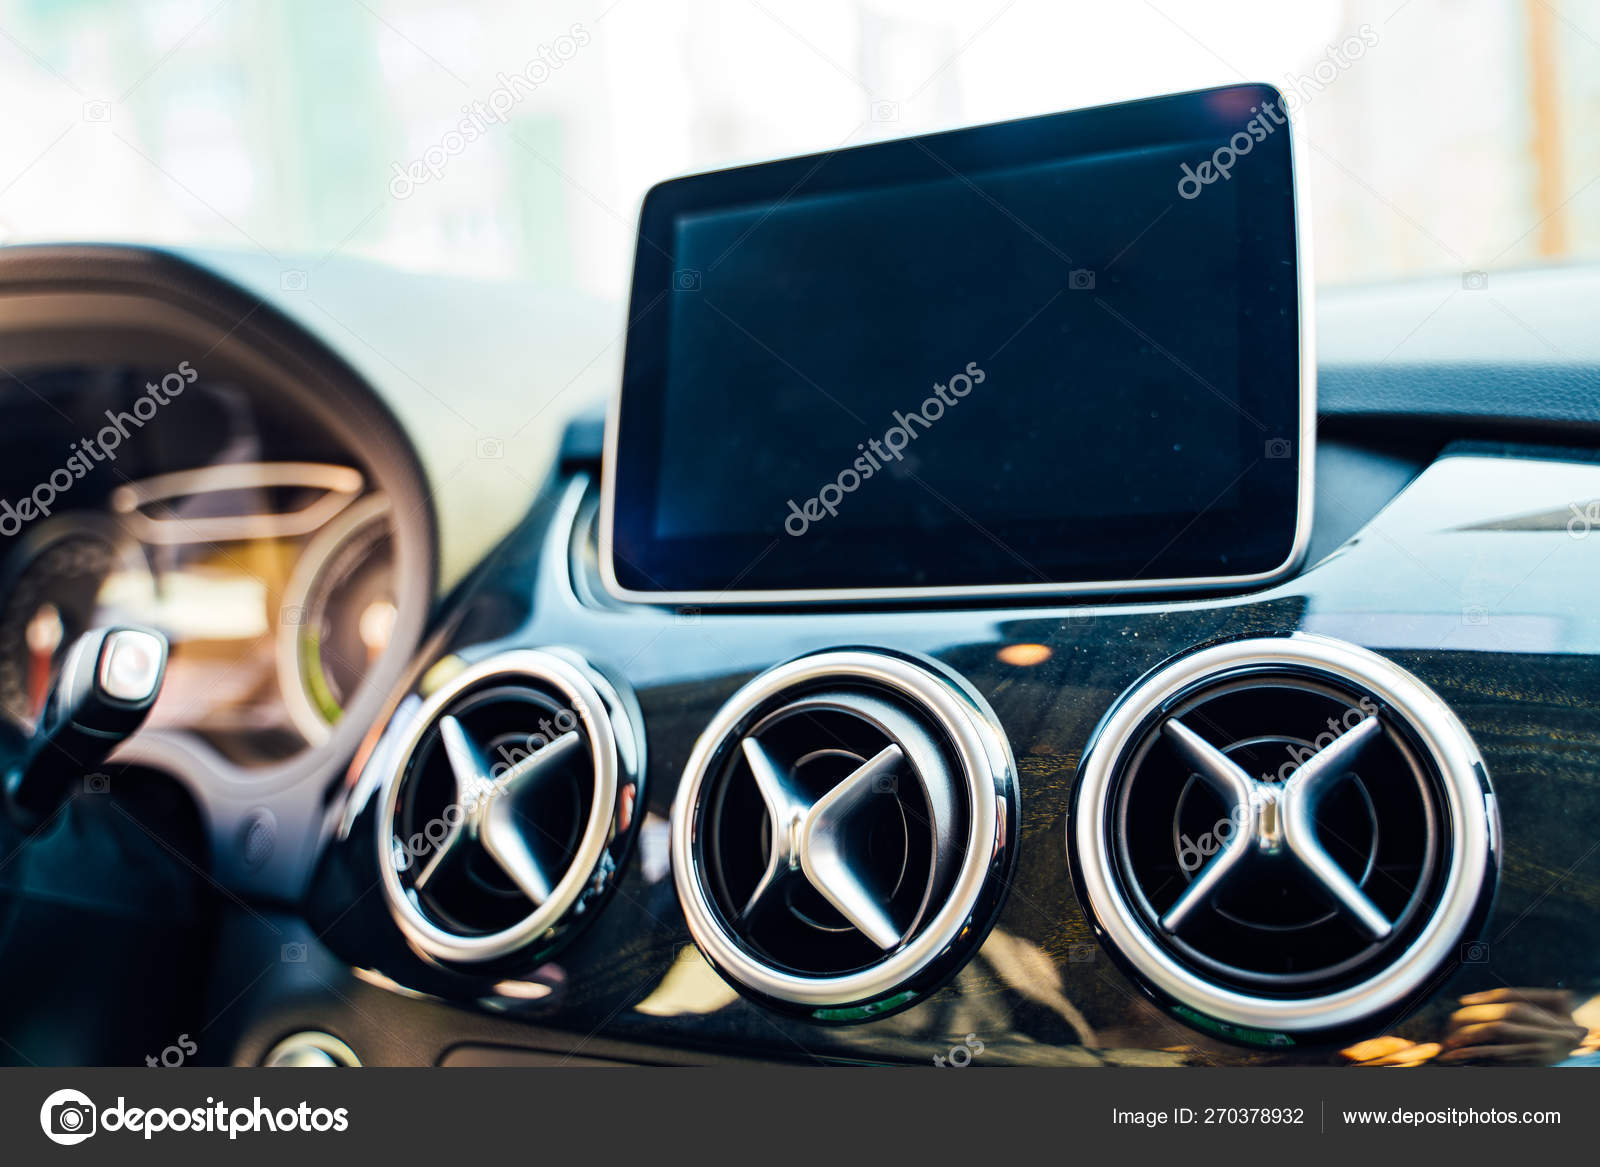 Vinnitsa Ukraine April 2019 Electric Car Mercedes Steering Wheel And Dashboard View Modern New Cars For Sale Stock Editorial Photo C Wedmov 270378932